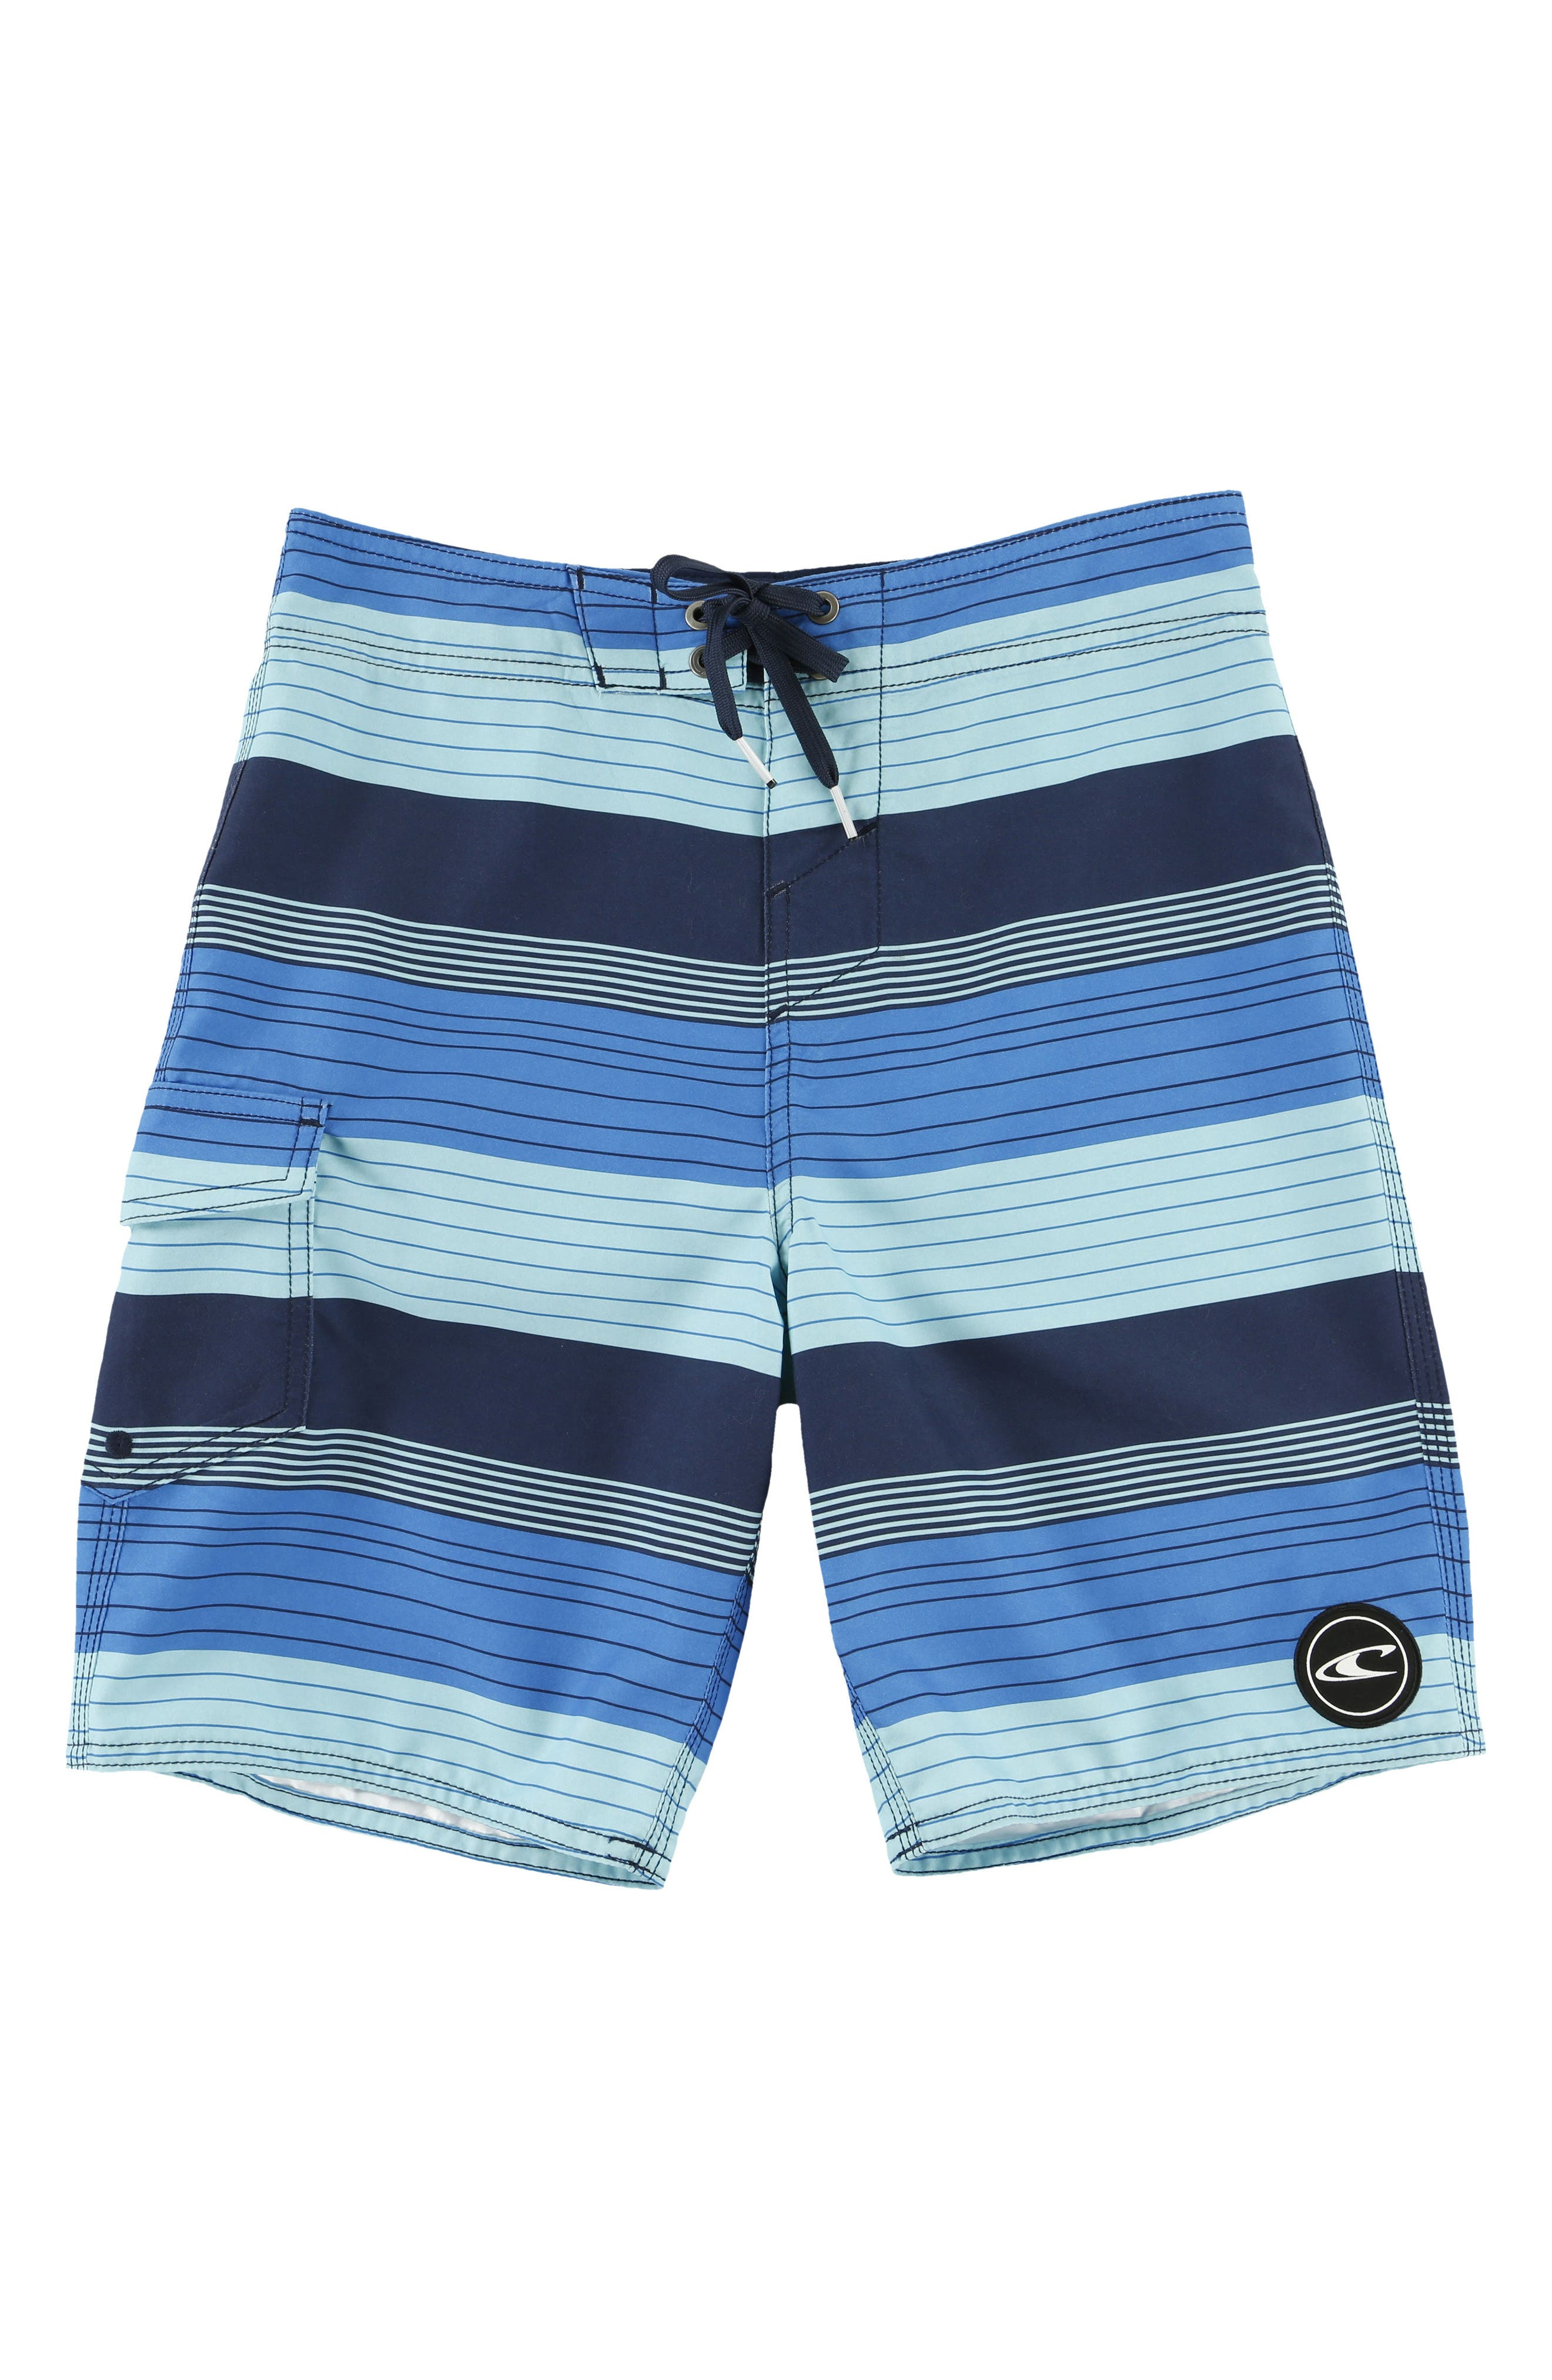 Alternate Image 1 Selected - O'Neill Santa Cruz Stripe Board Shorts (Big Boys)